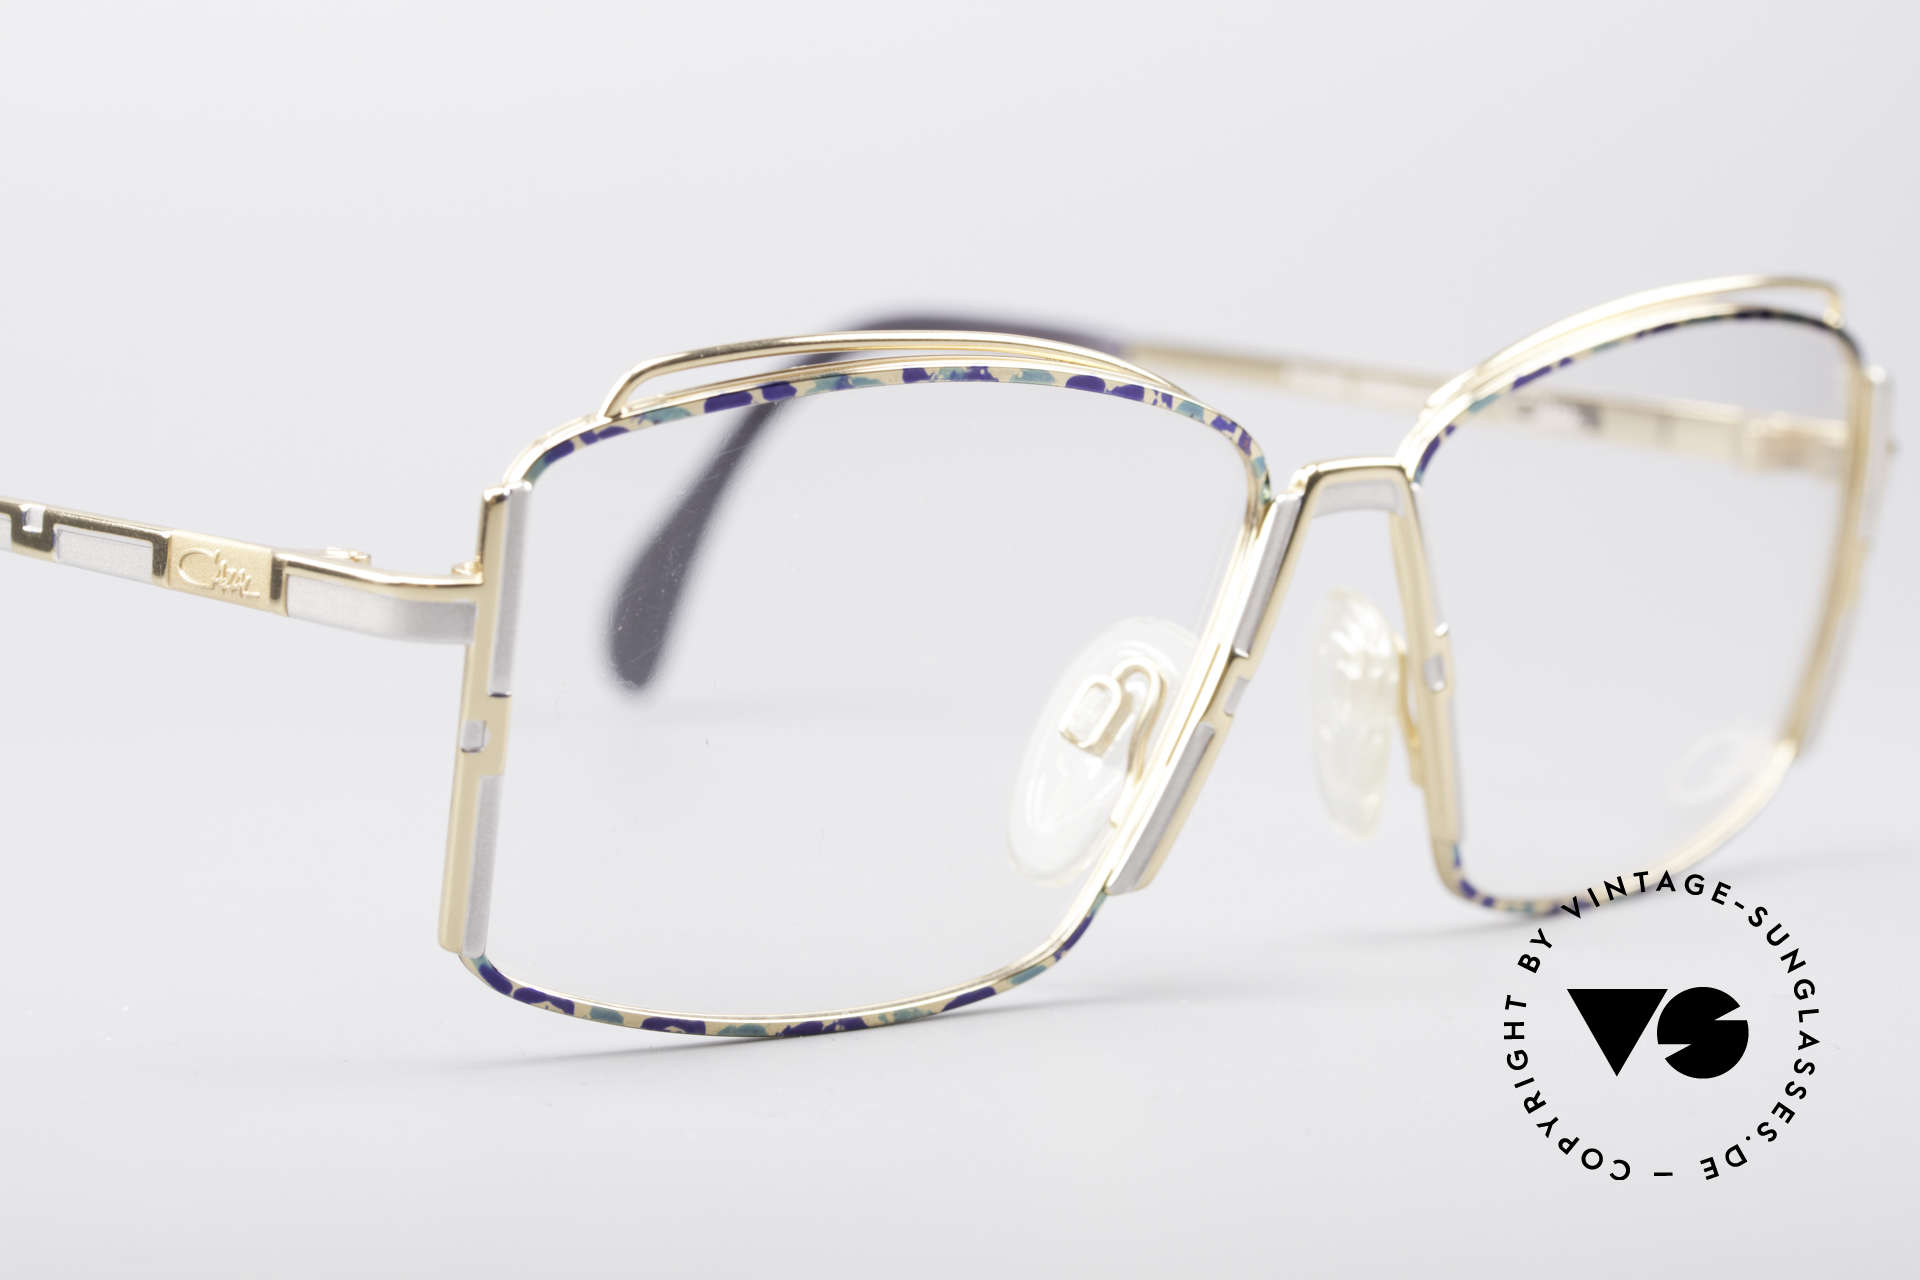 Cazal 264 No Retro True Vintage Frame, never worn (like all our rare vintage frames by Cazal), Made for Women